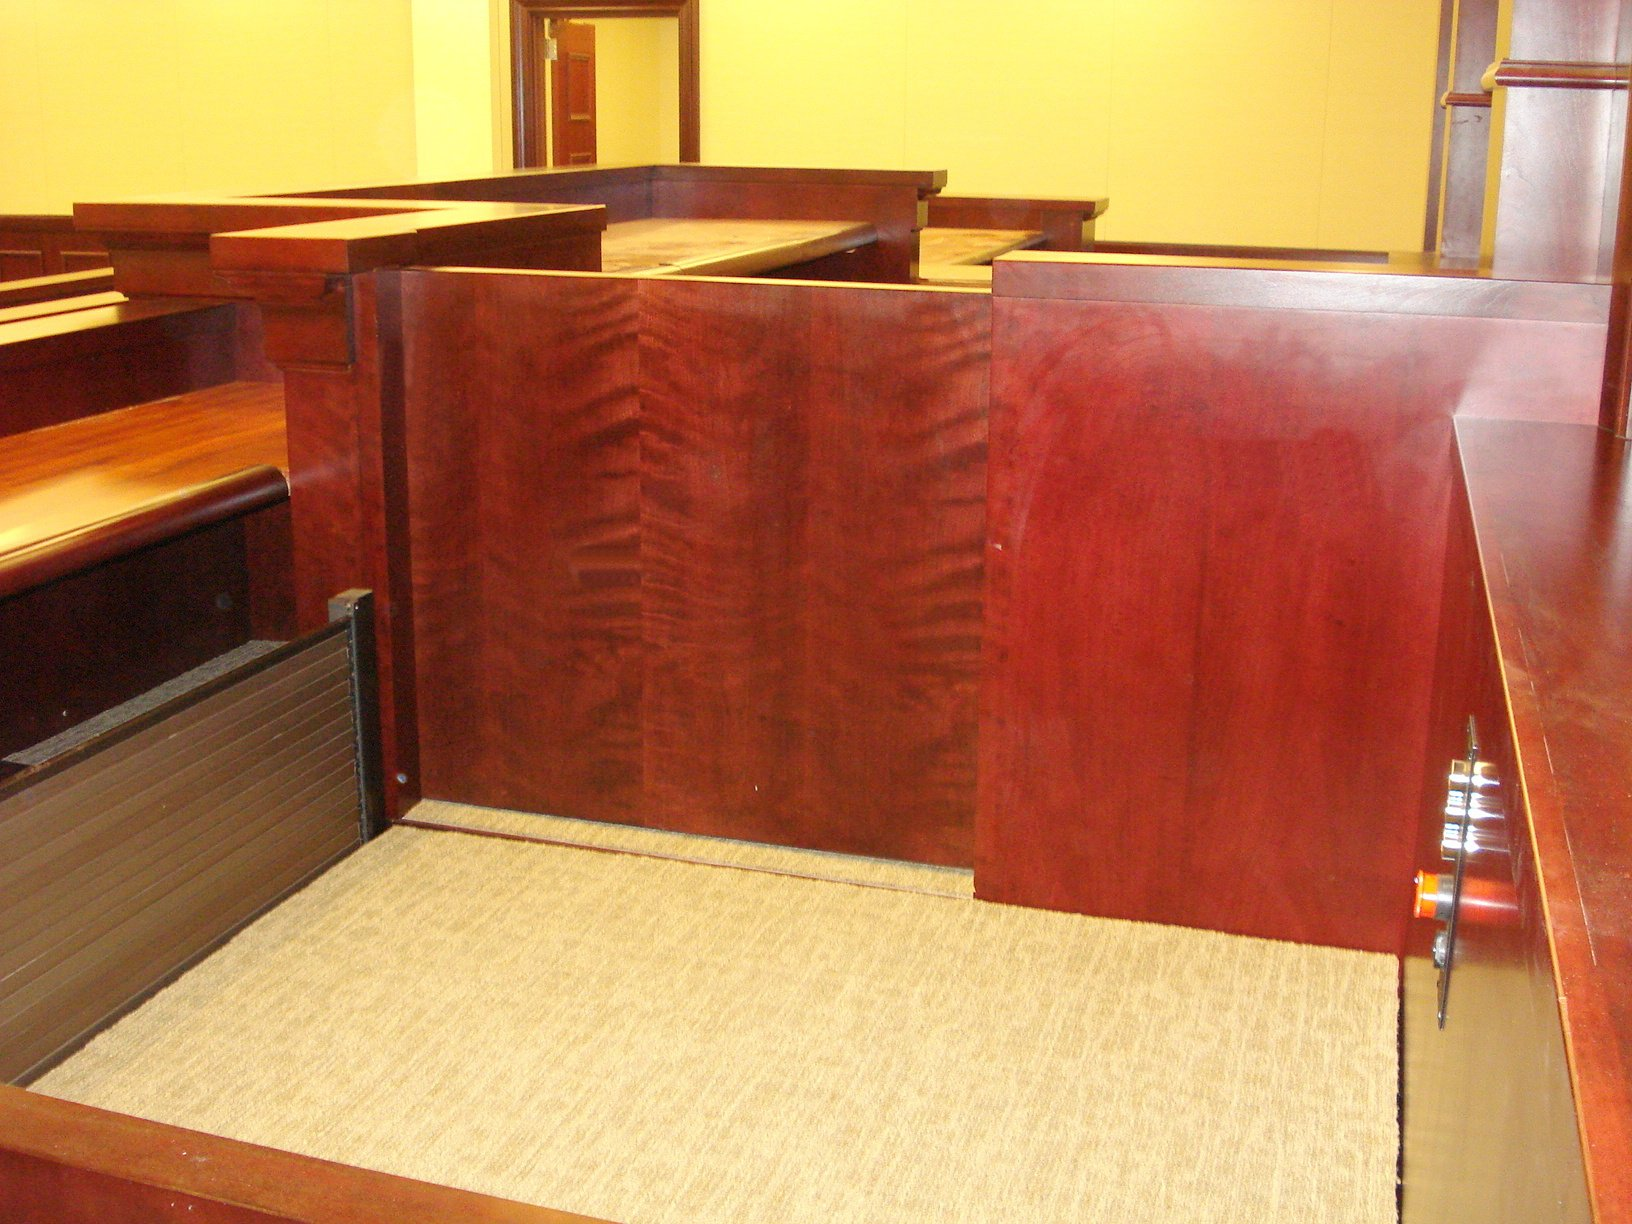 View of the lift from the side of the witness stand. Lift positioned at witness or intermediate level, both doors are closed and the roll-up barrier is up to guard the desk area during lift operation. Lift encased in wood millwork blending in with courtroom millwork. Lift is readily available and independently operable.